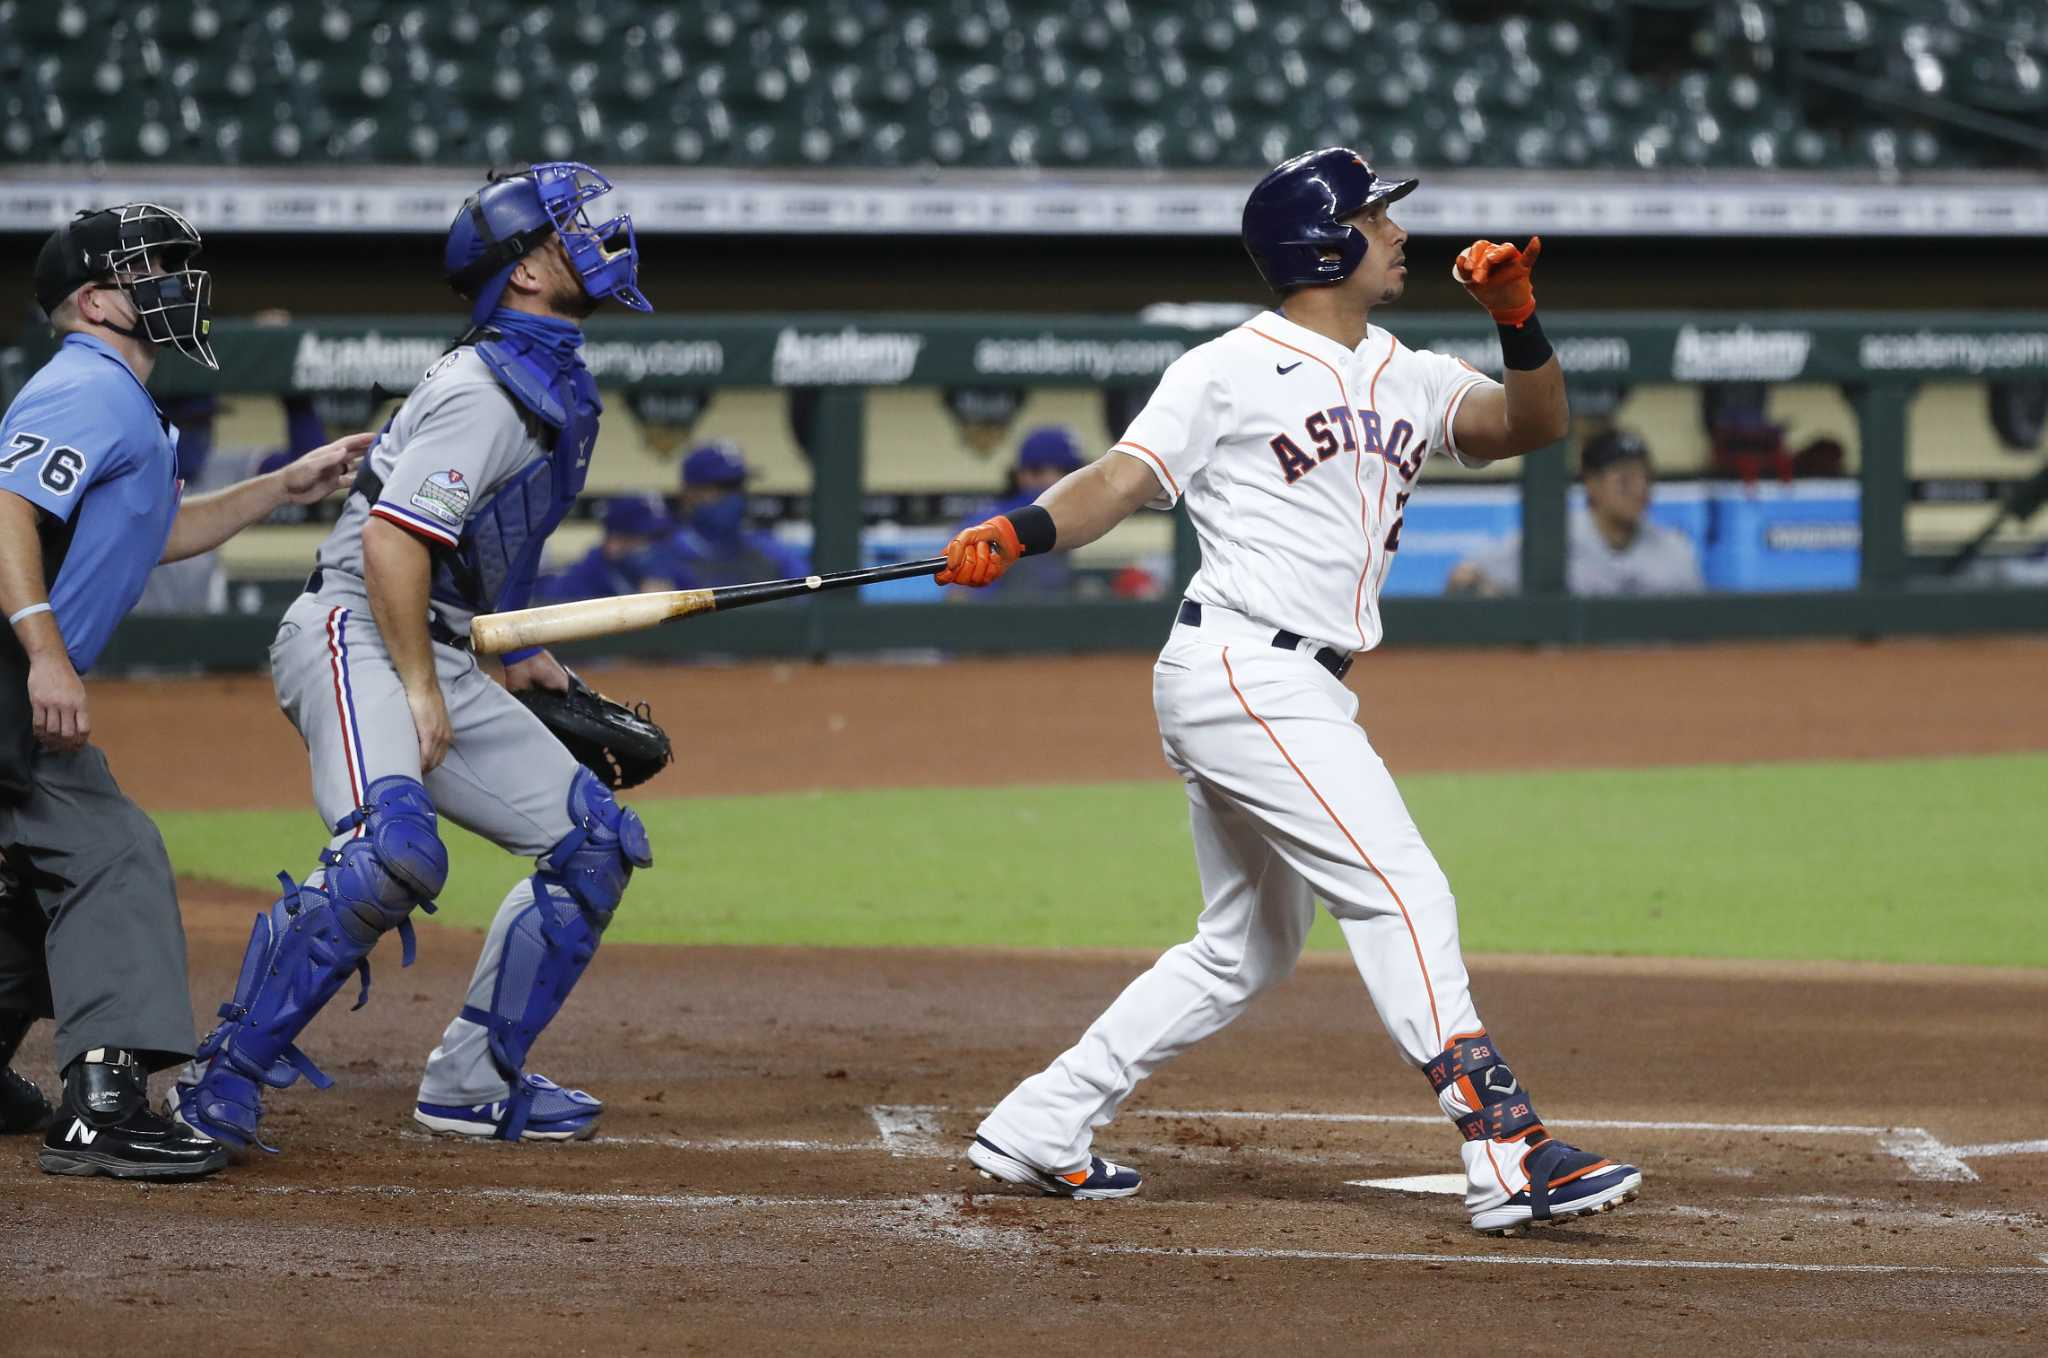 Michael Brantley homers early, Astros hold on for win over Texas